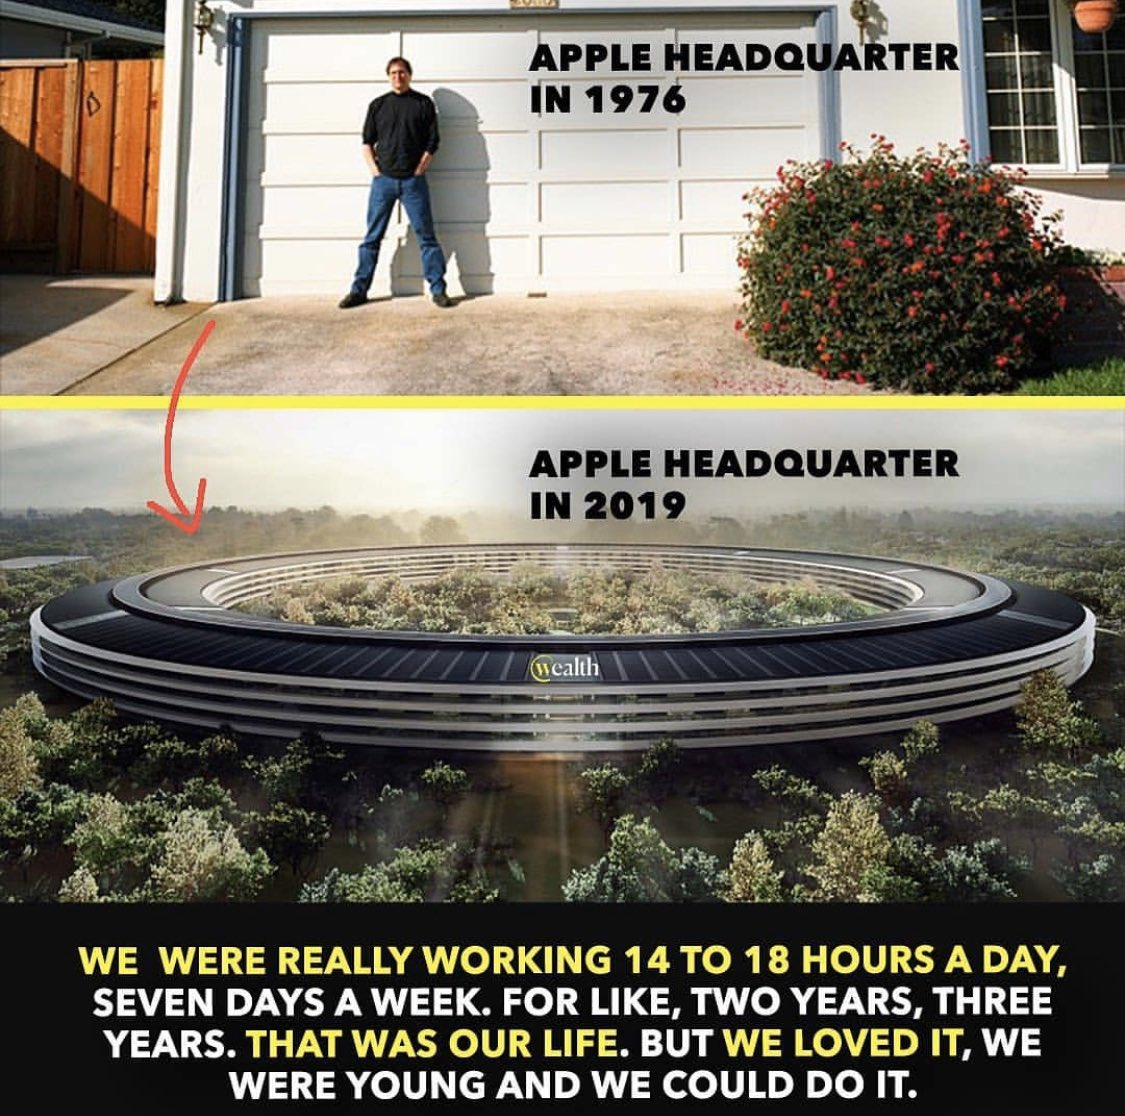 Apple from 1976 to NOW  #Business #Billionaire #Empire #Passion #Grateful #Hustle #Patience #Goals #Dreams #Conviction #Determination #Ideas #Apple #Determination #Consistency #Risk #Implement #Global #HardWork #Mission #Headquarters #Life #Wise #Will #Opportunist #Work #iPhone